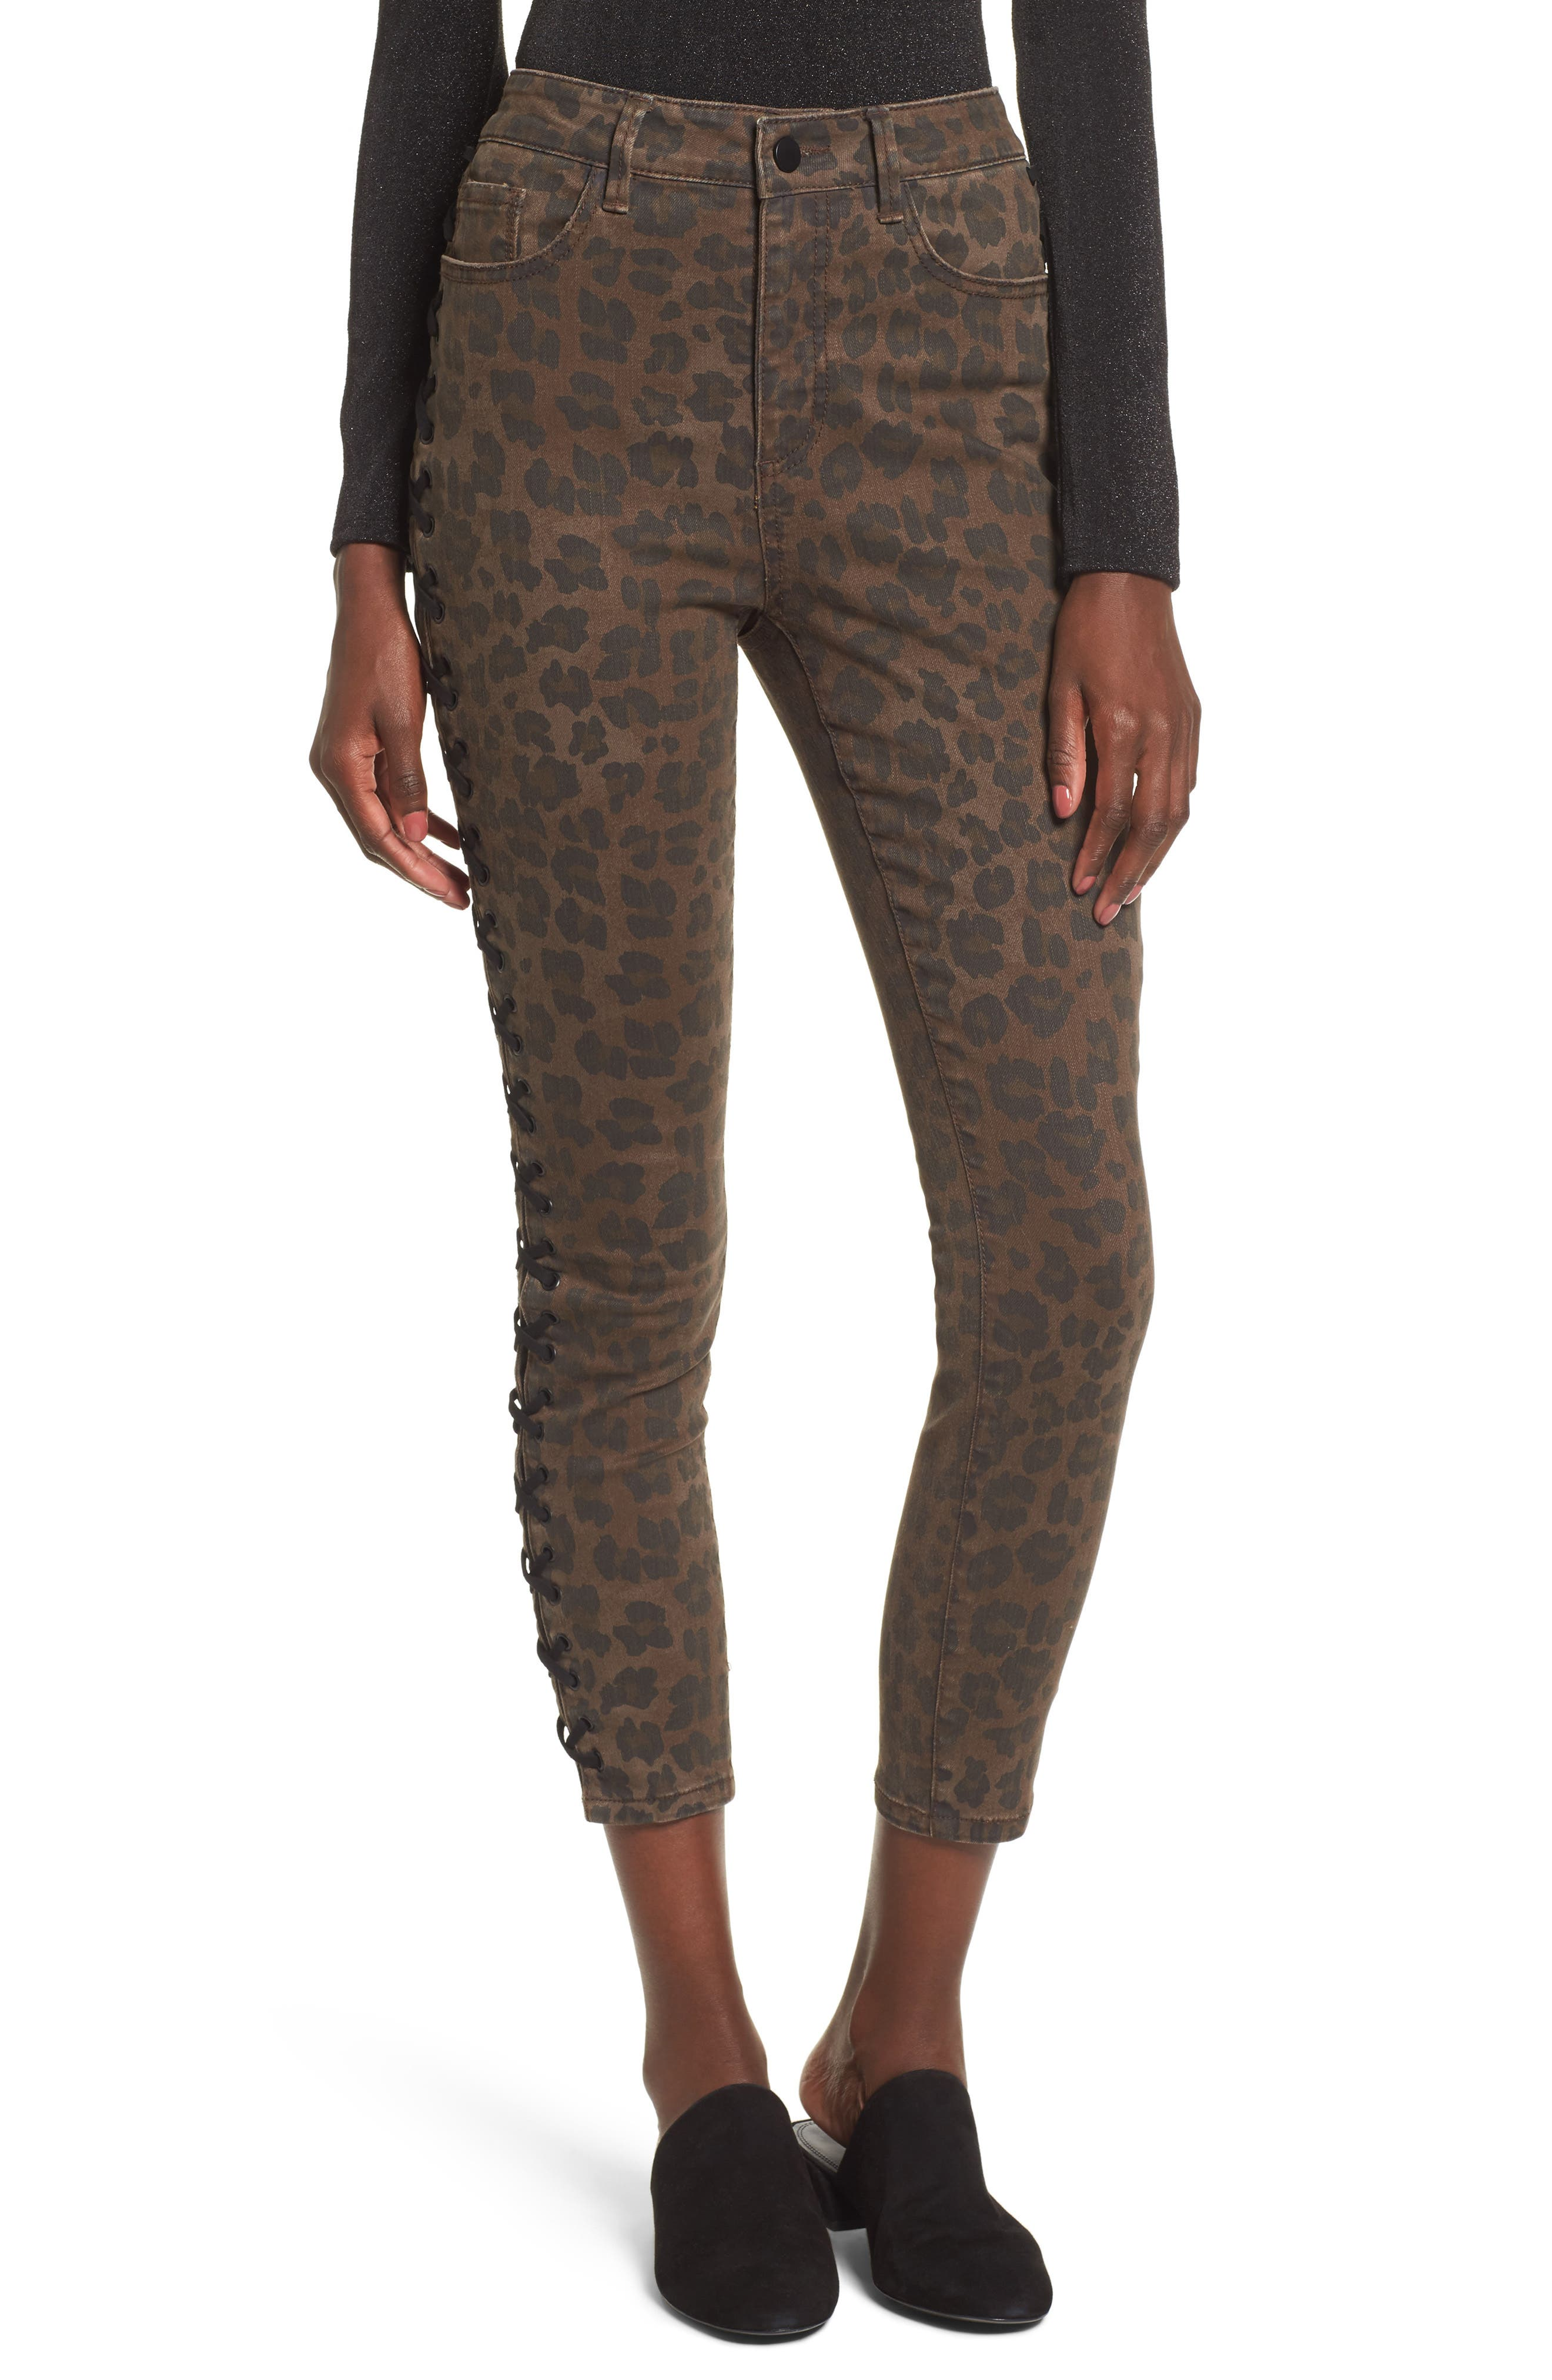 Main Image - AFRM Lace Up Leopard Crop Skinny Jeans